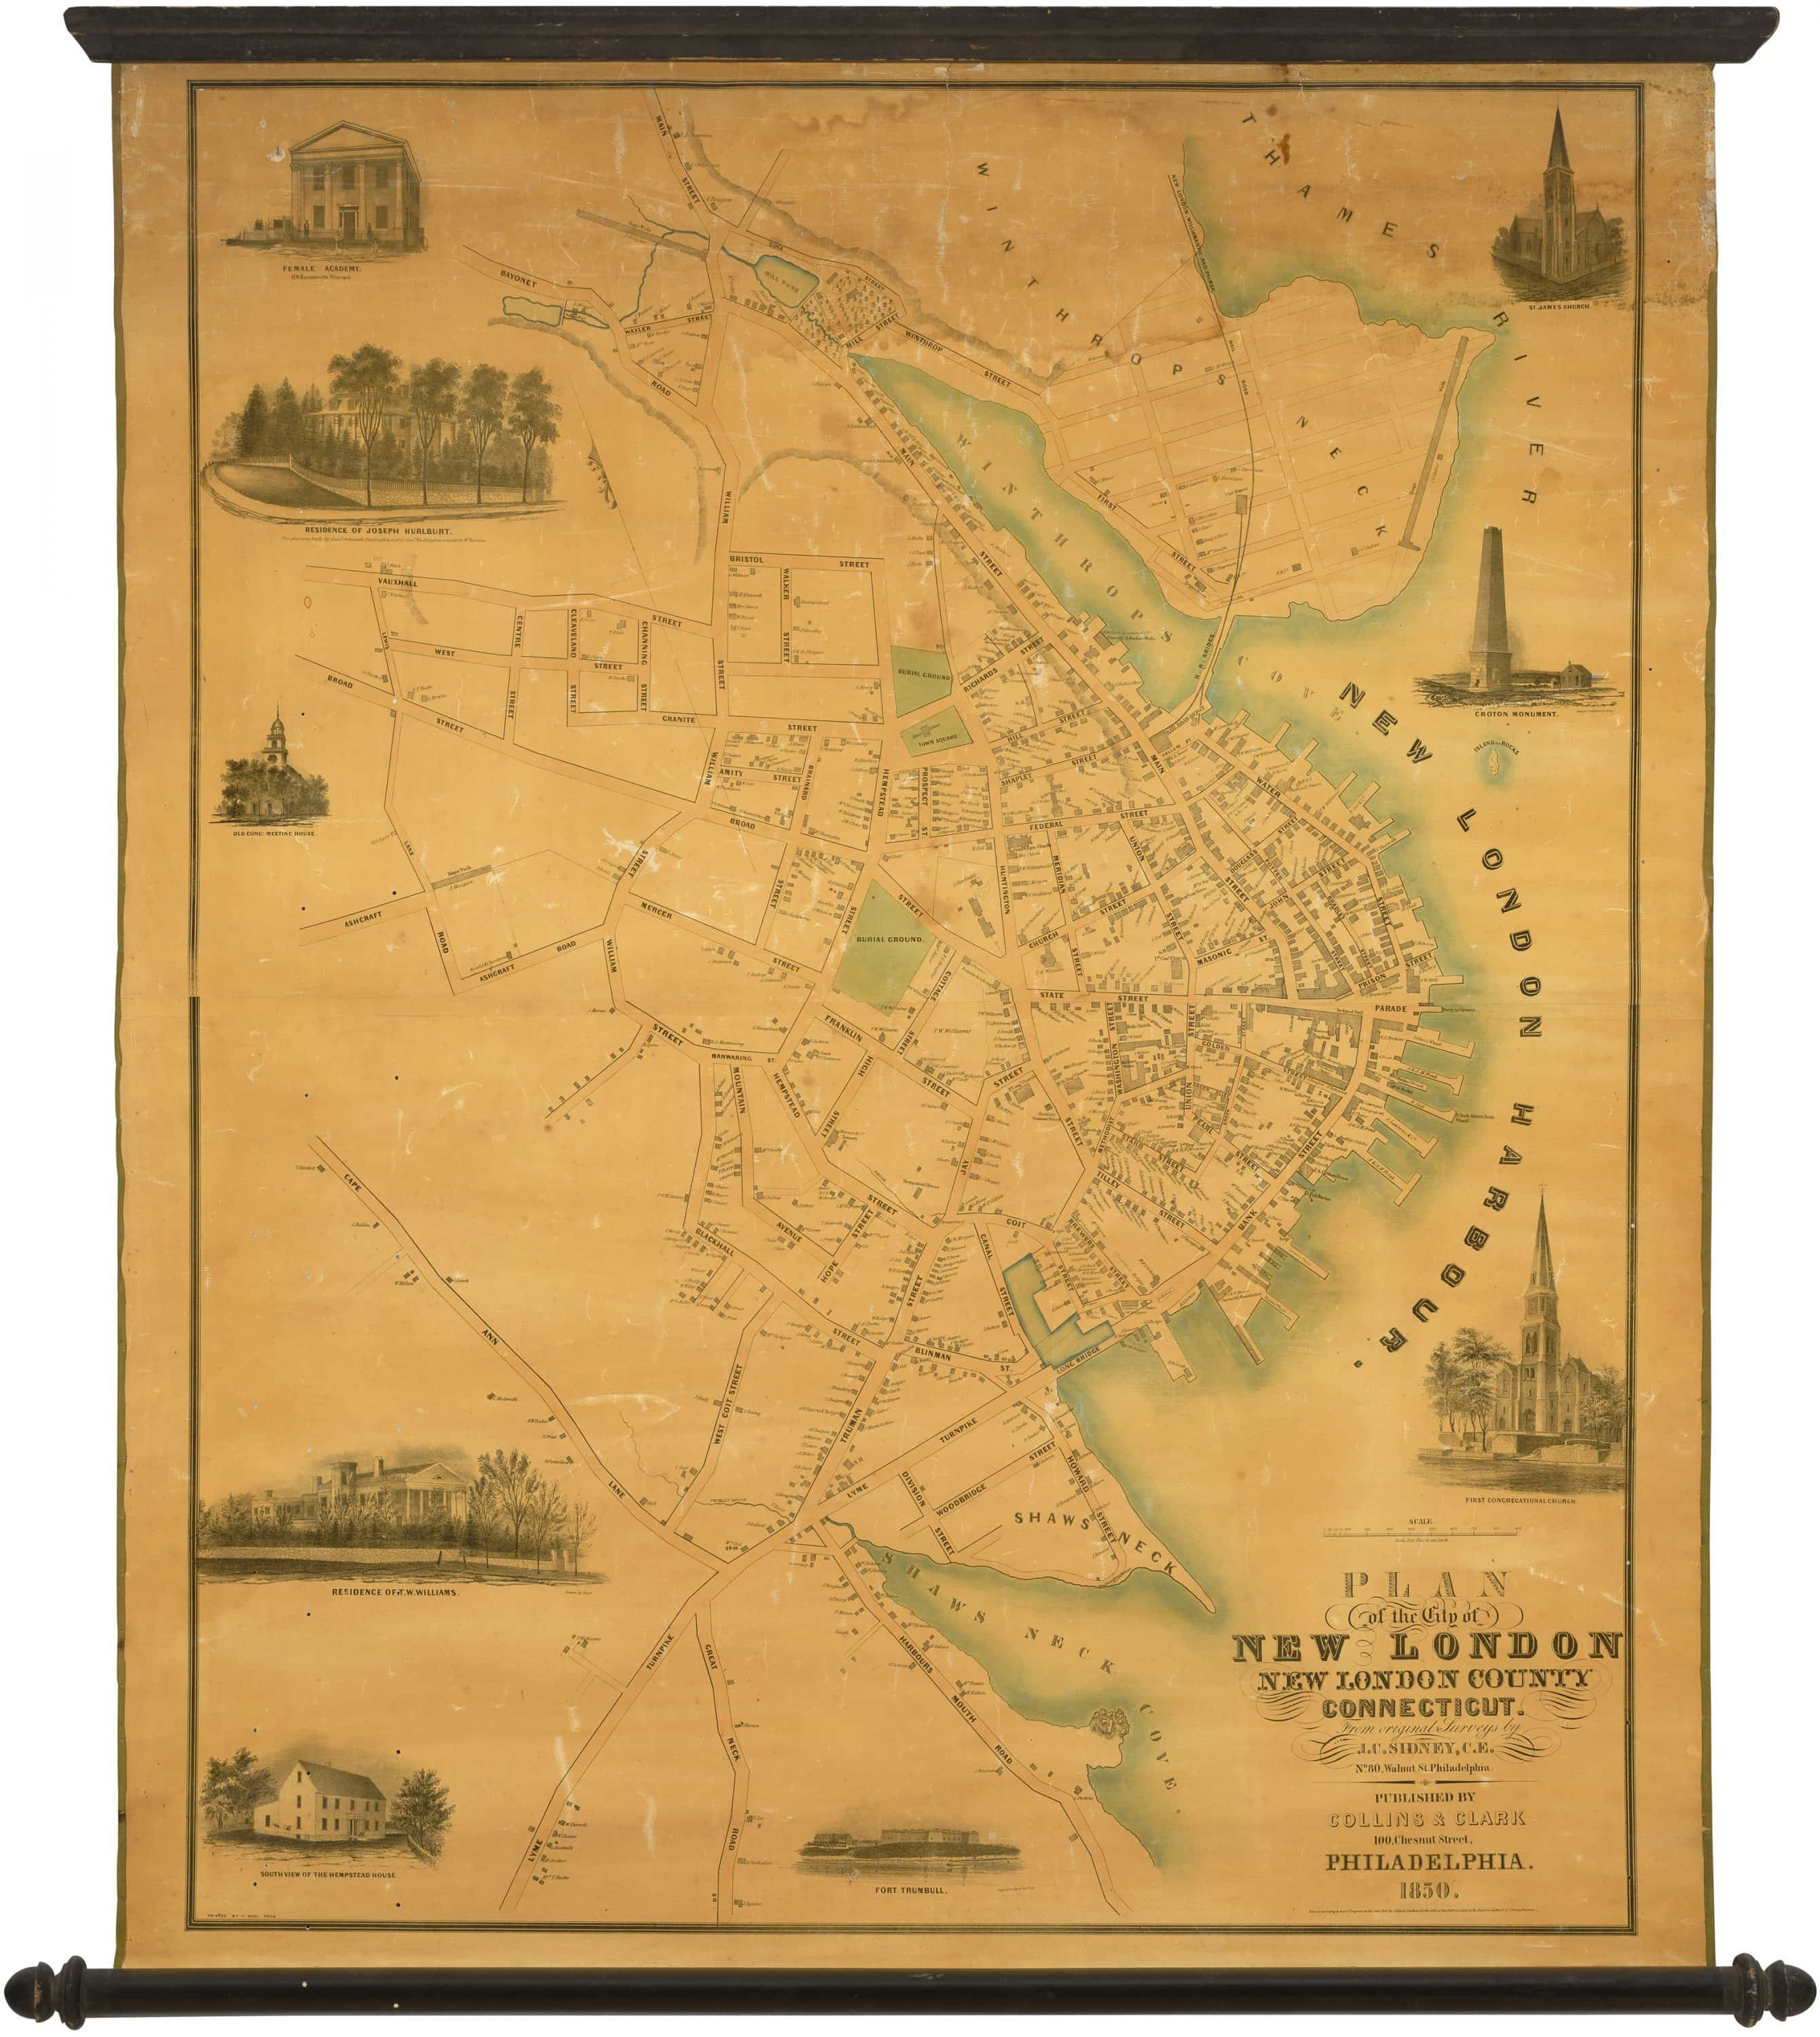 London Atlas Map.1850 Wall Map Of New London Connecticut